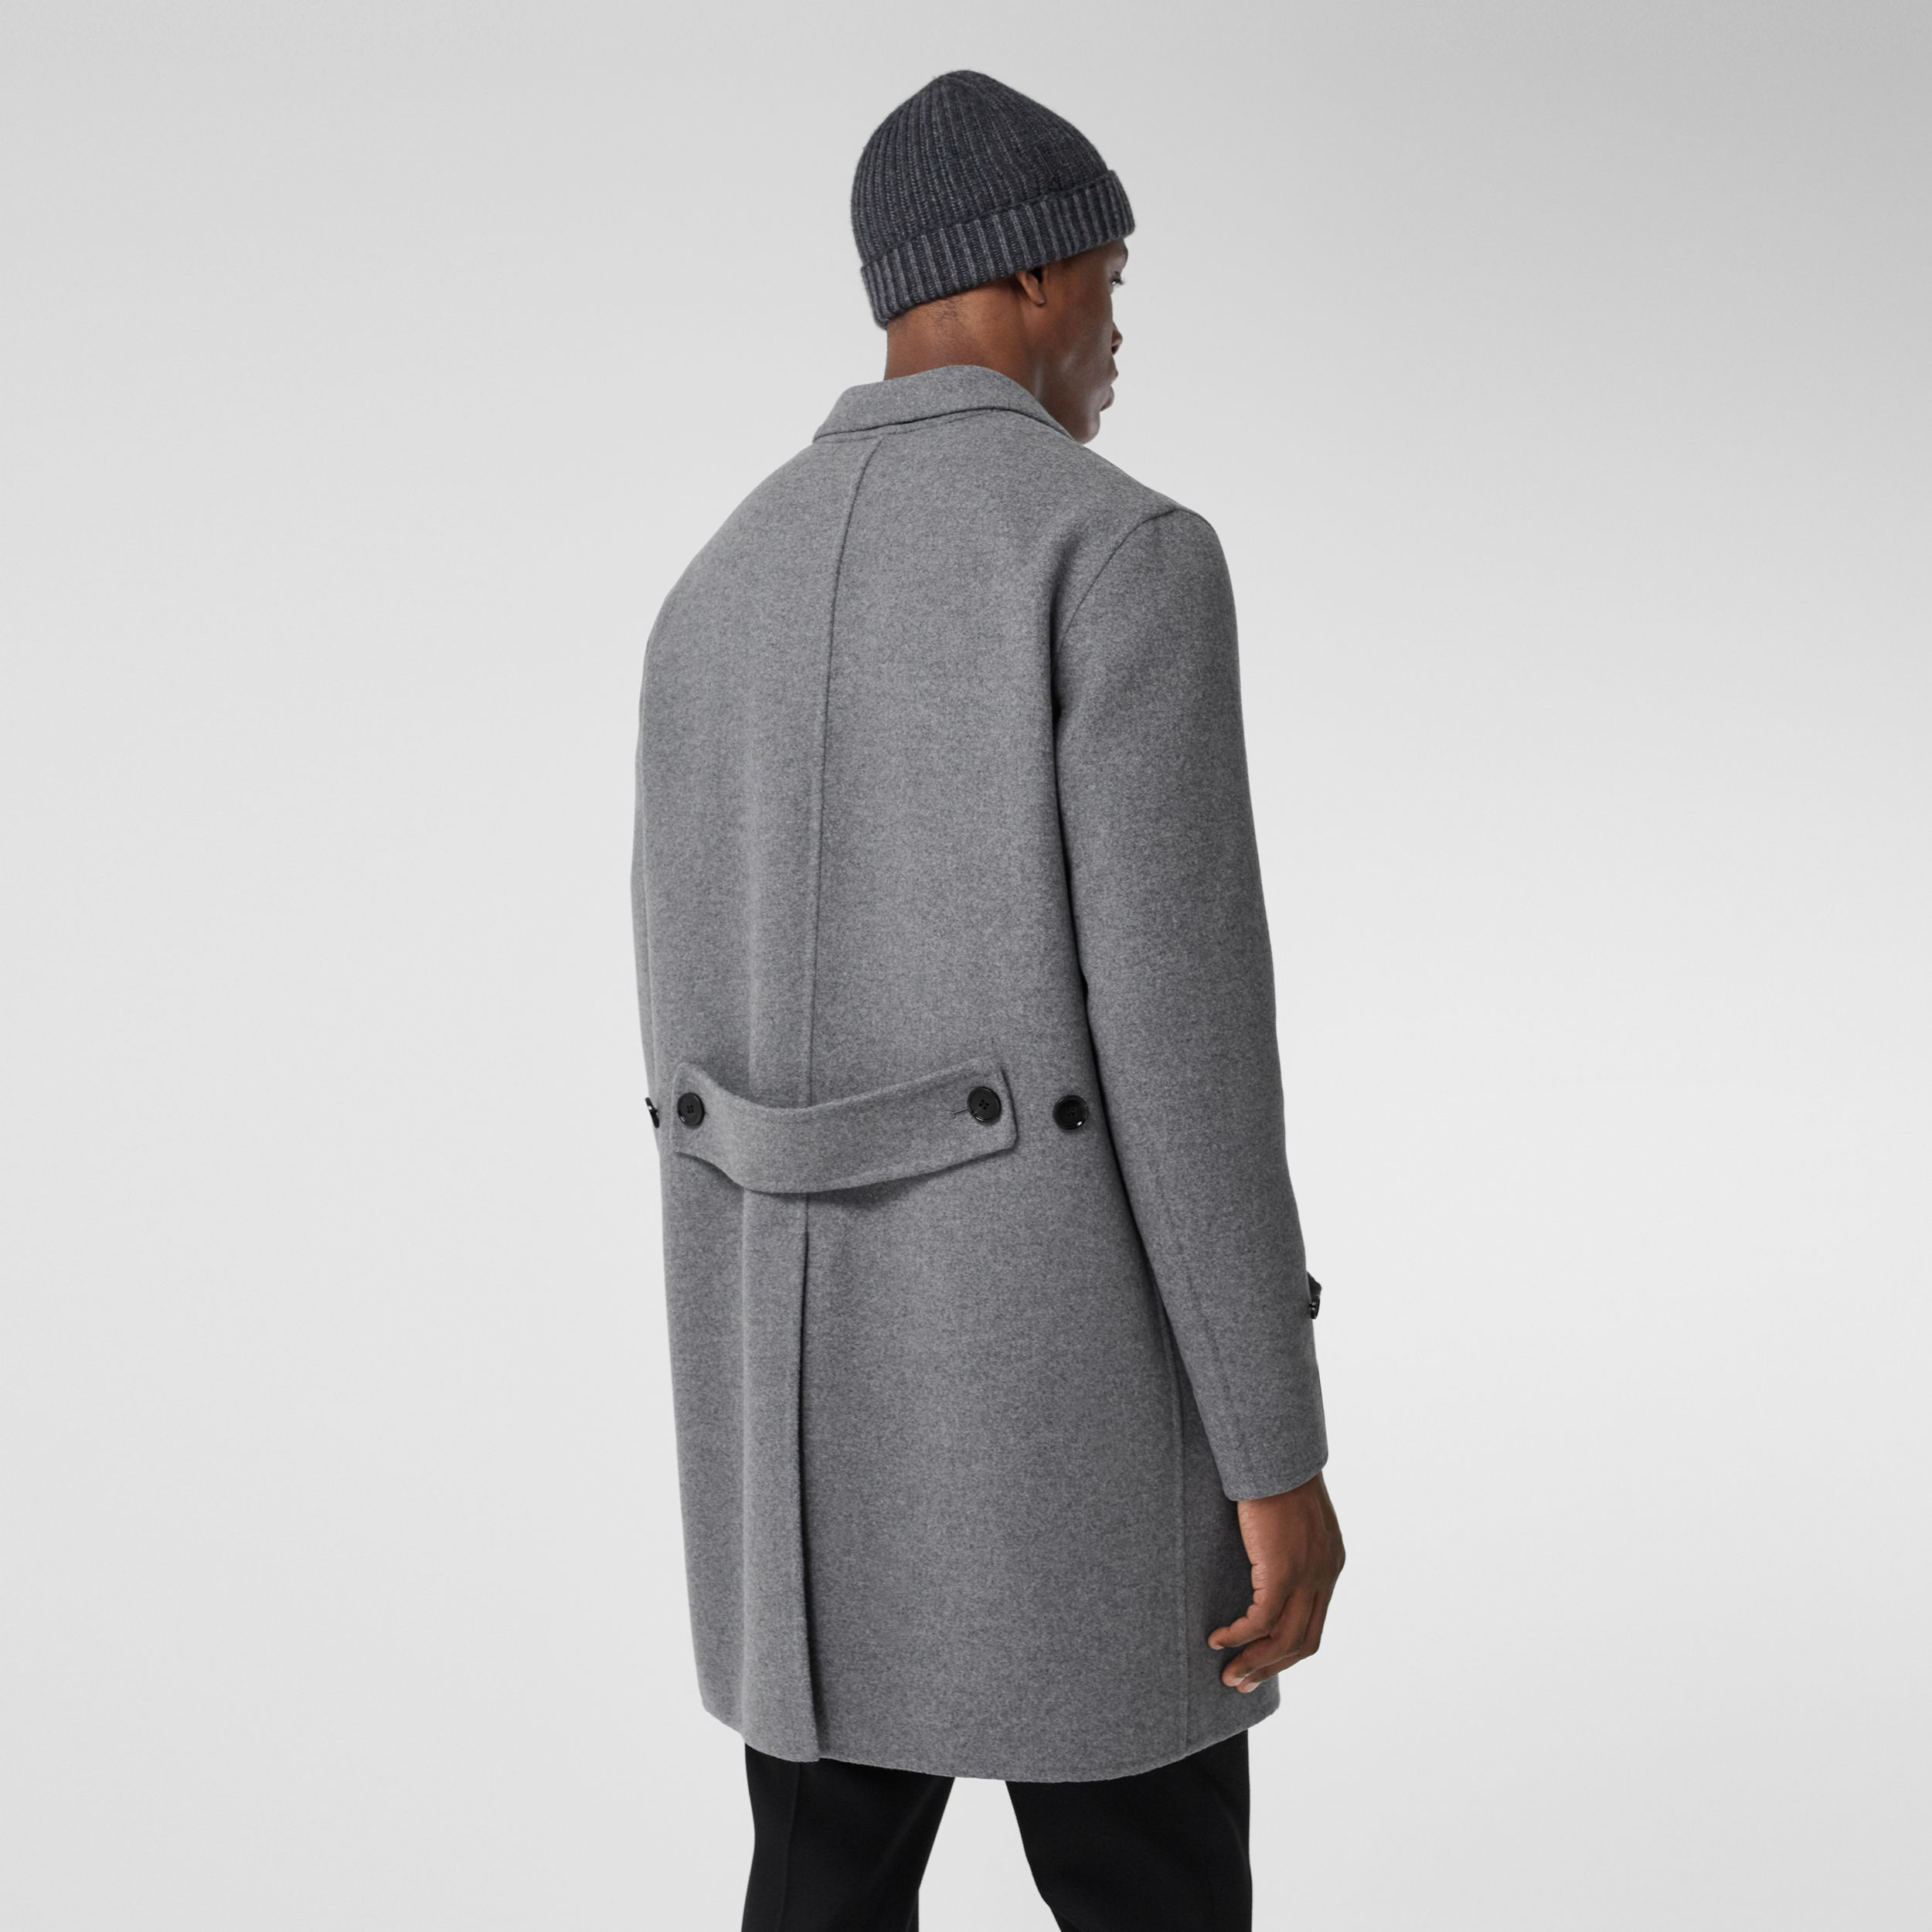 Wool Cashmere Lab Coat in Charcoal - Men | Burberry - 3